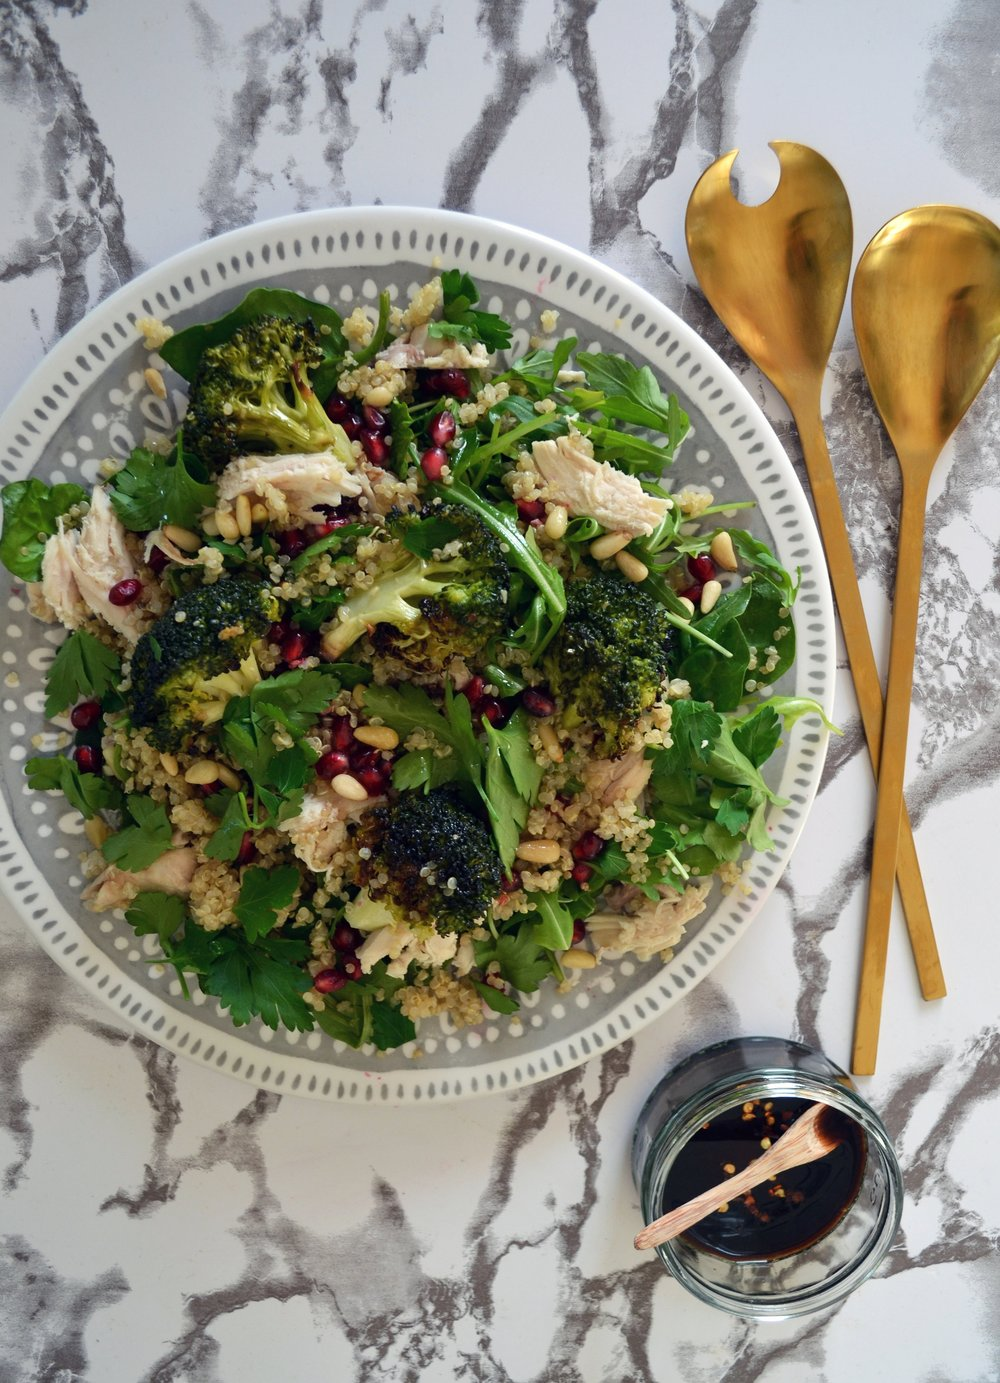 Roast chicken and broccoli salad | The Flourishing Pantry